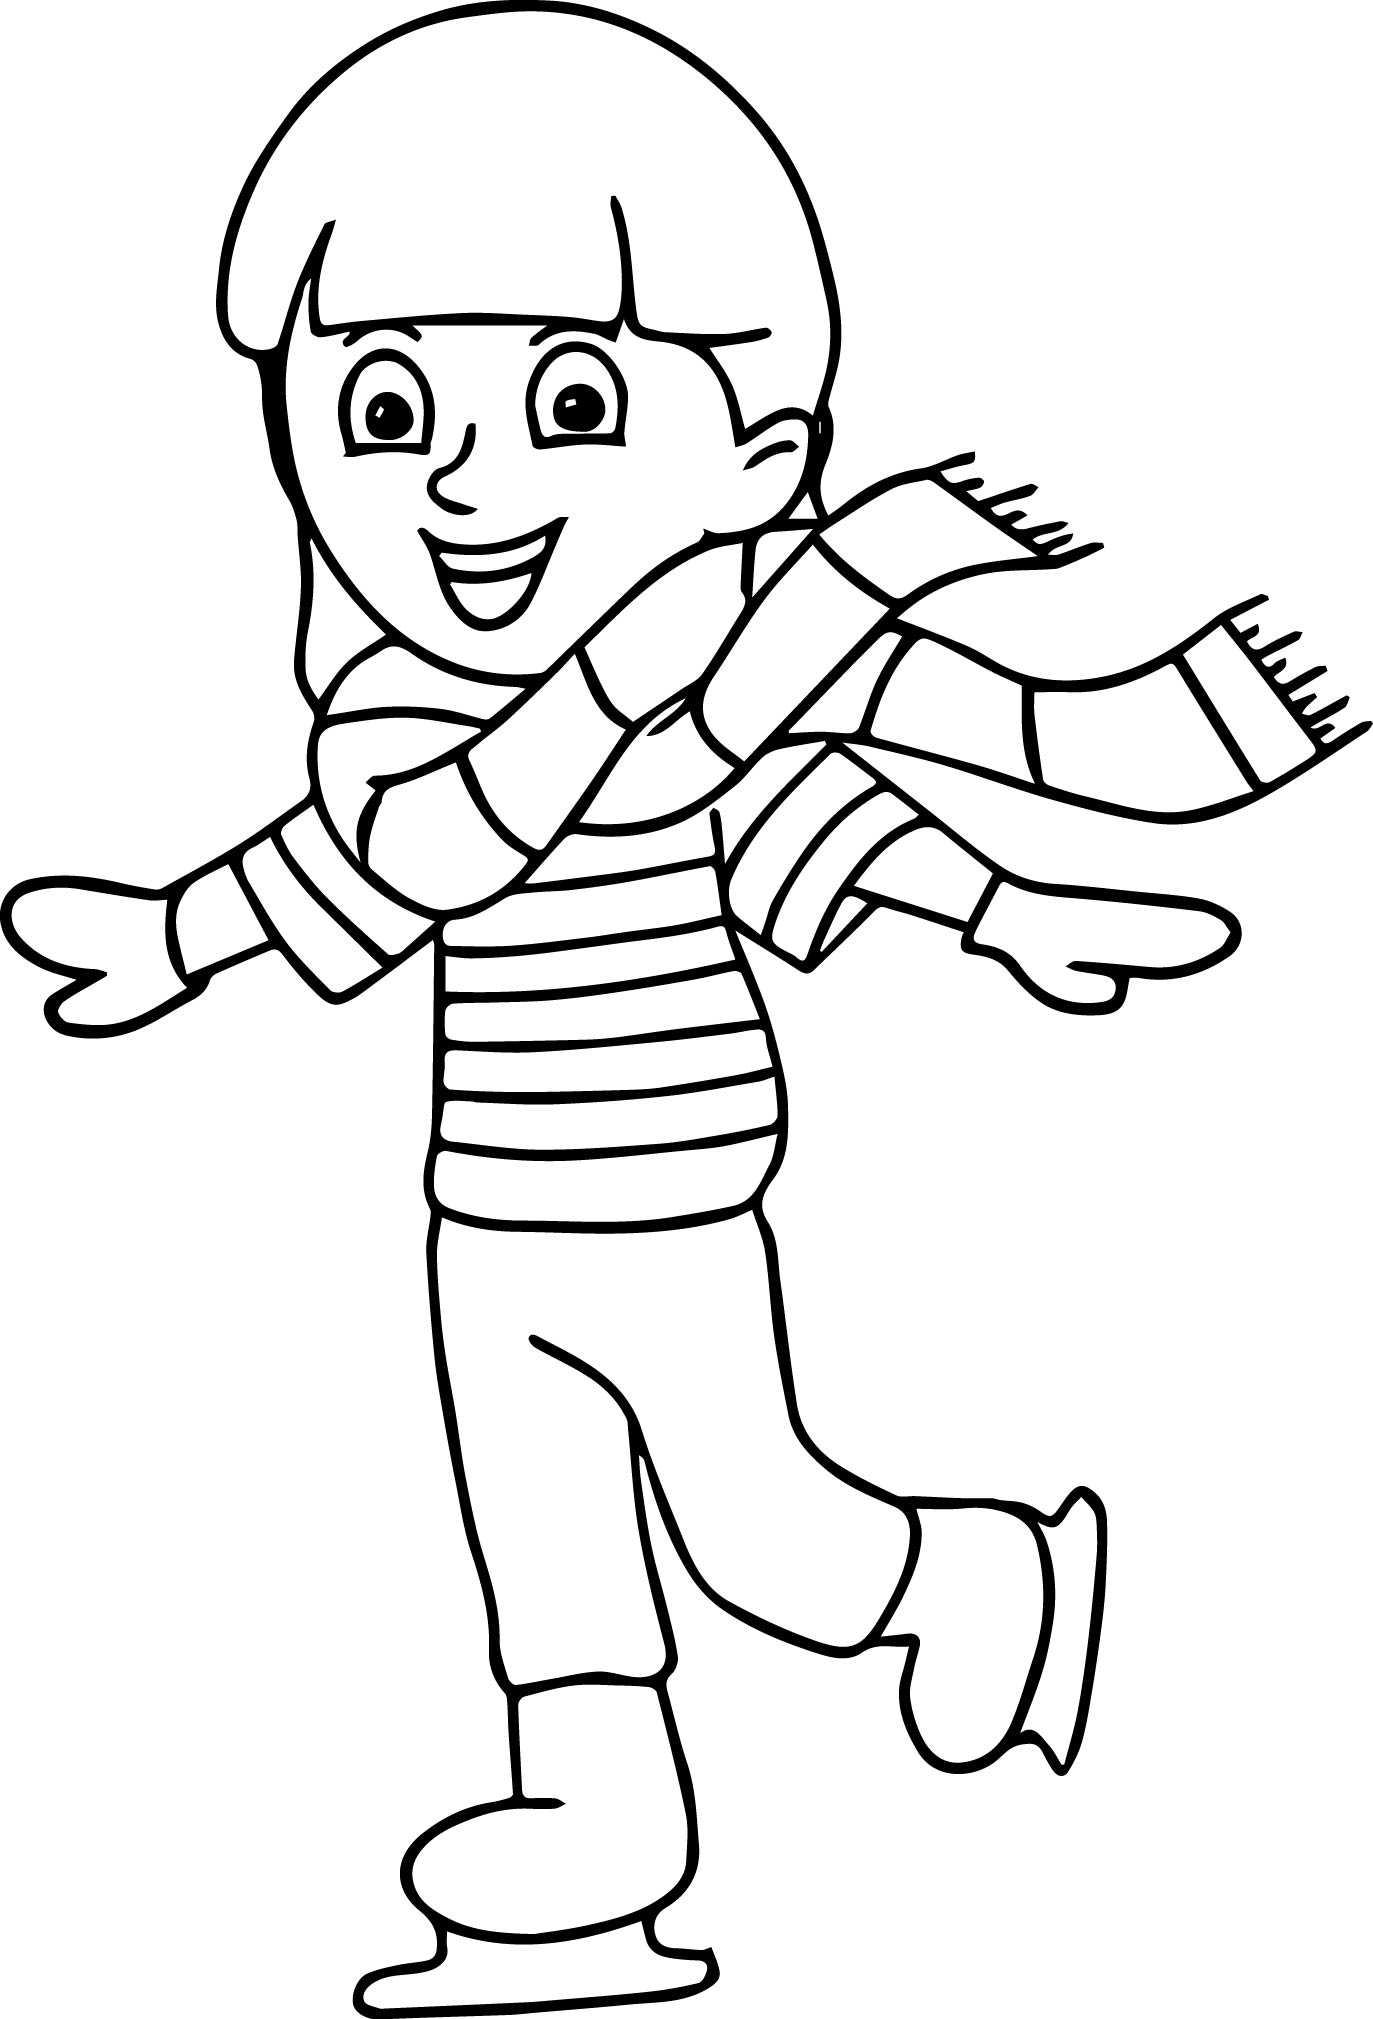 ice skating colouring pictures playing ice skating coloring page peewee camp sports ice pictures skating colouring